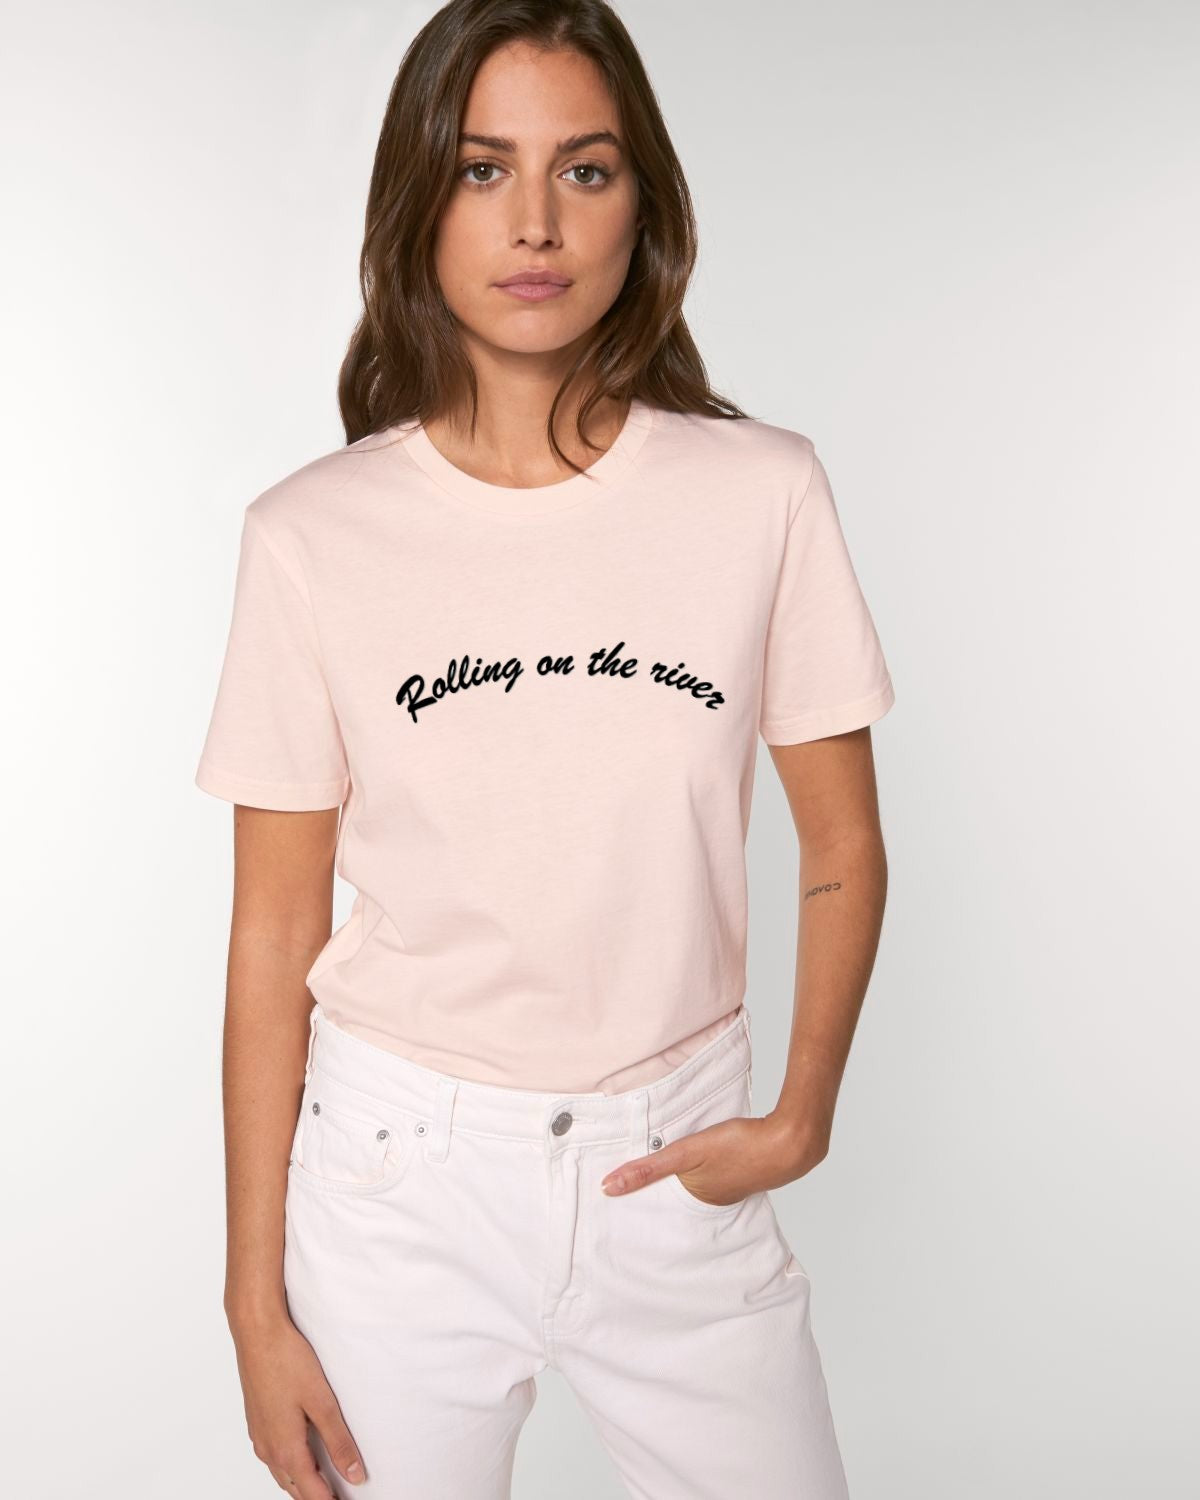 'ROLLING ON THE RIVER' EMBROIDERED WOMEN'S ICONIC MEDIUM ORGANIC T-SHIRT